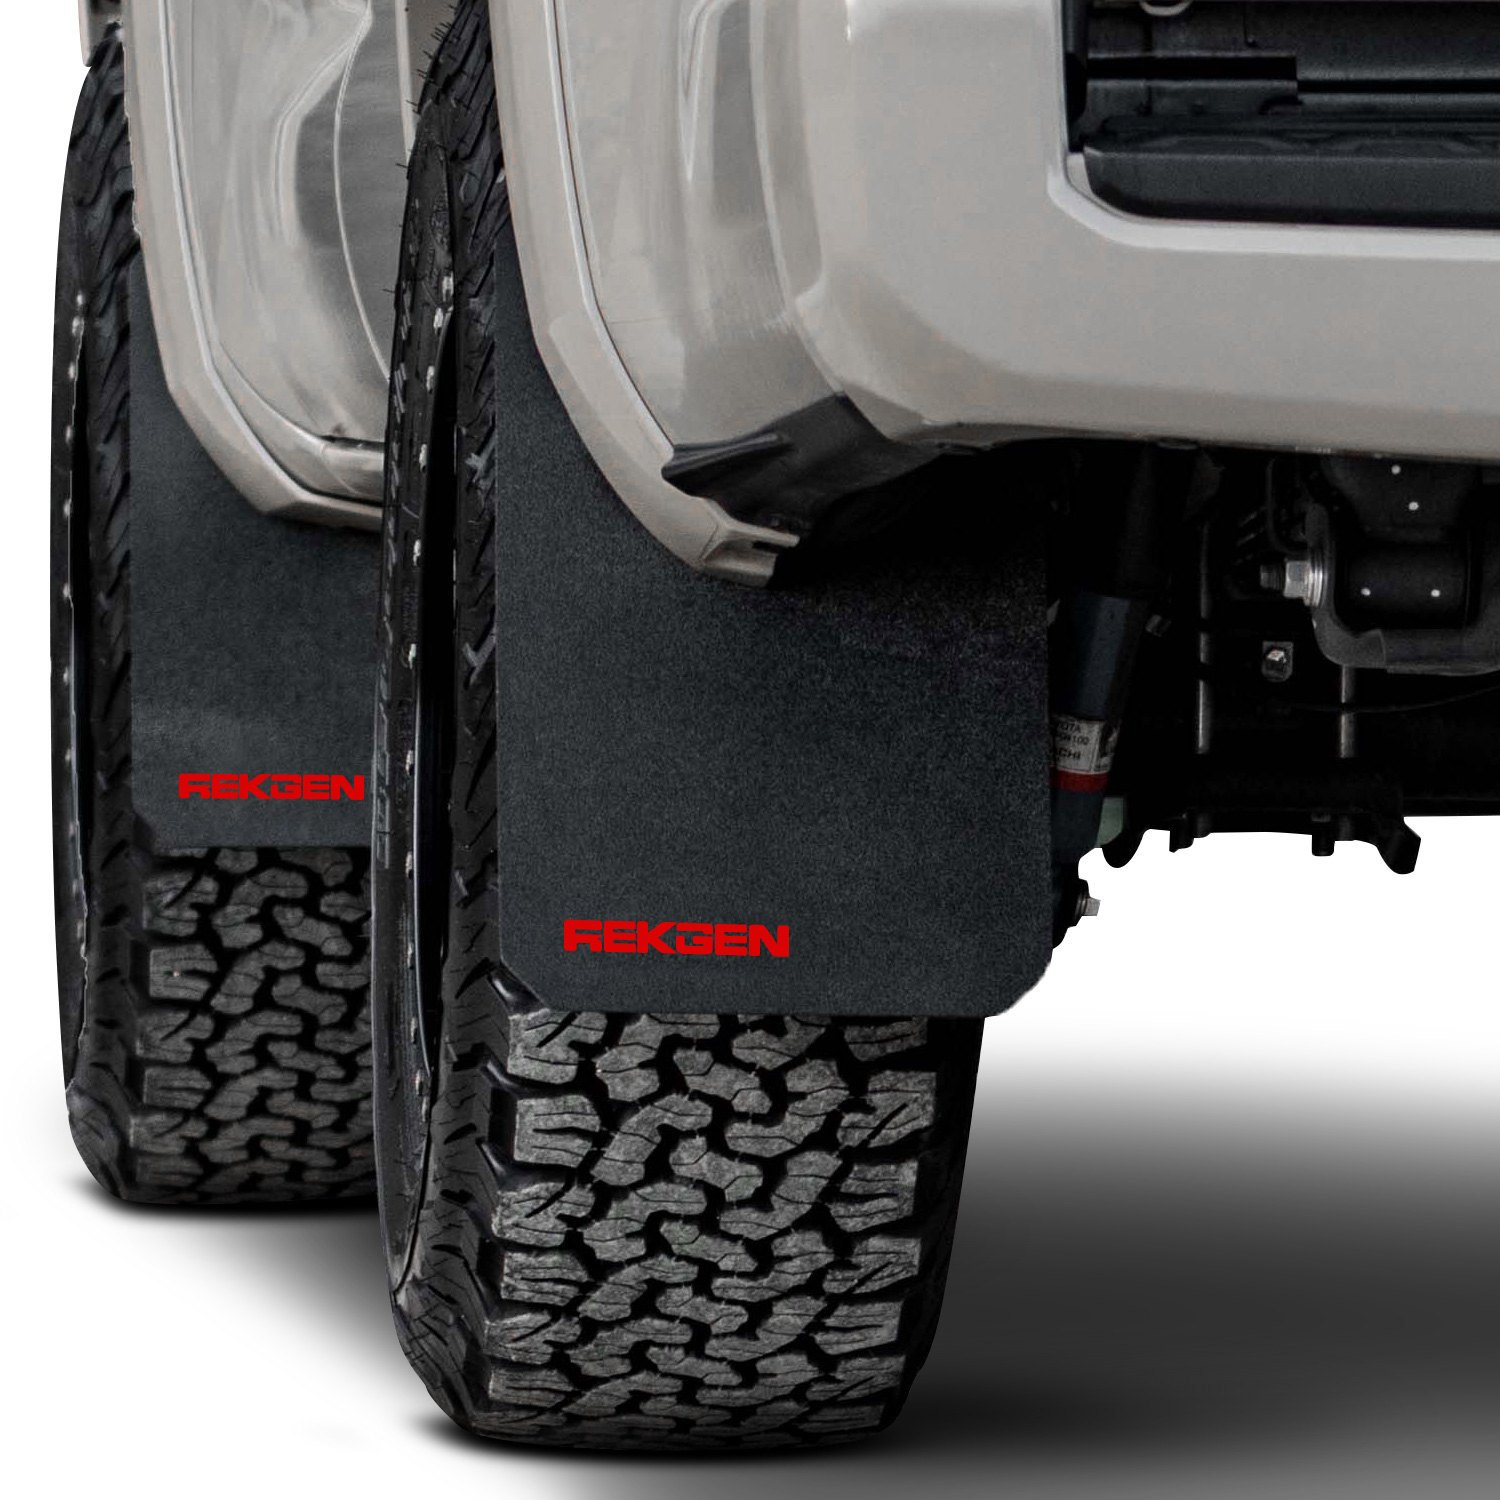 Semi Truck Mud Flaps >> For Toyota Tacoma 2016-2019 Rek Gen T1004 Rally Edition Mud Flaps w Red Logo | eBay